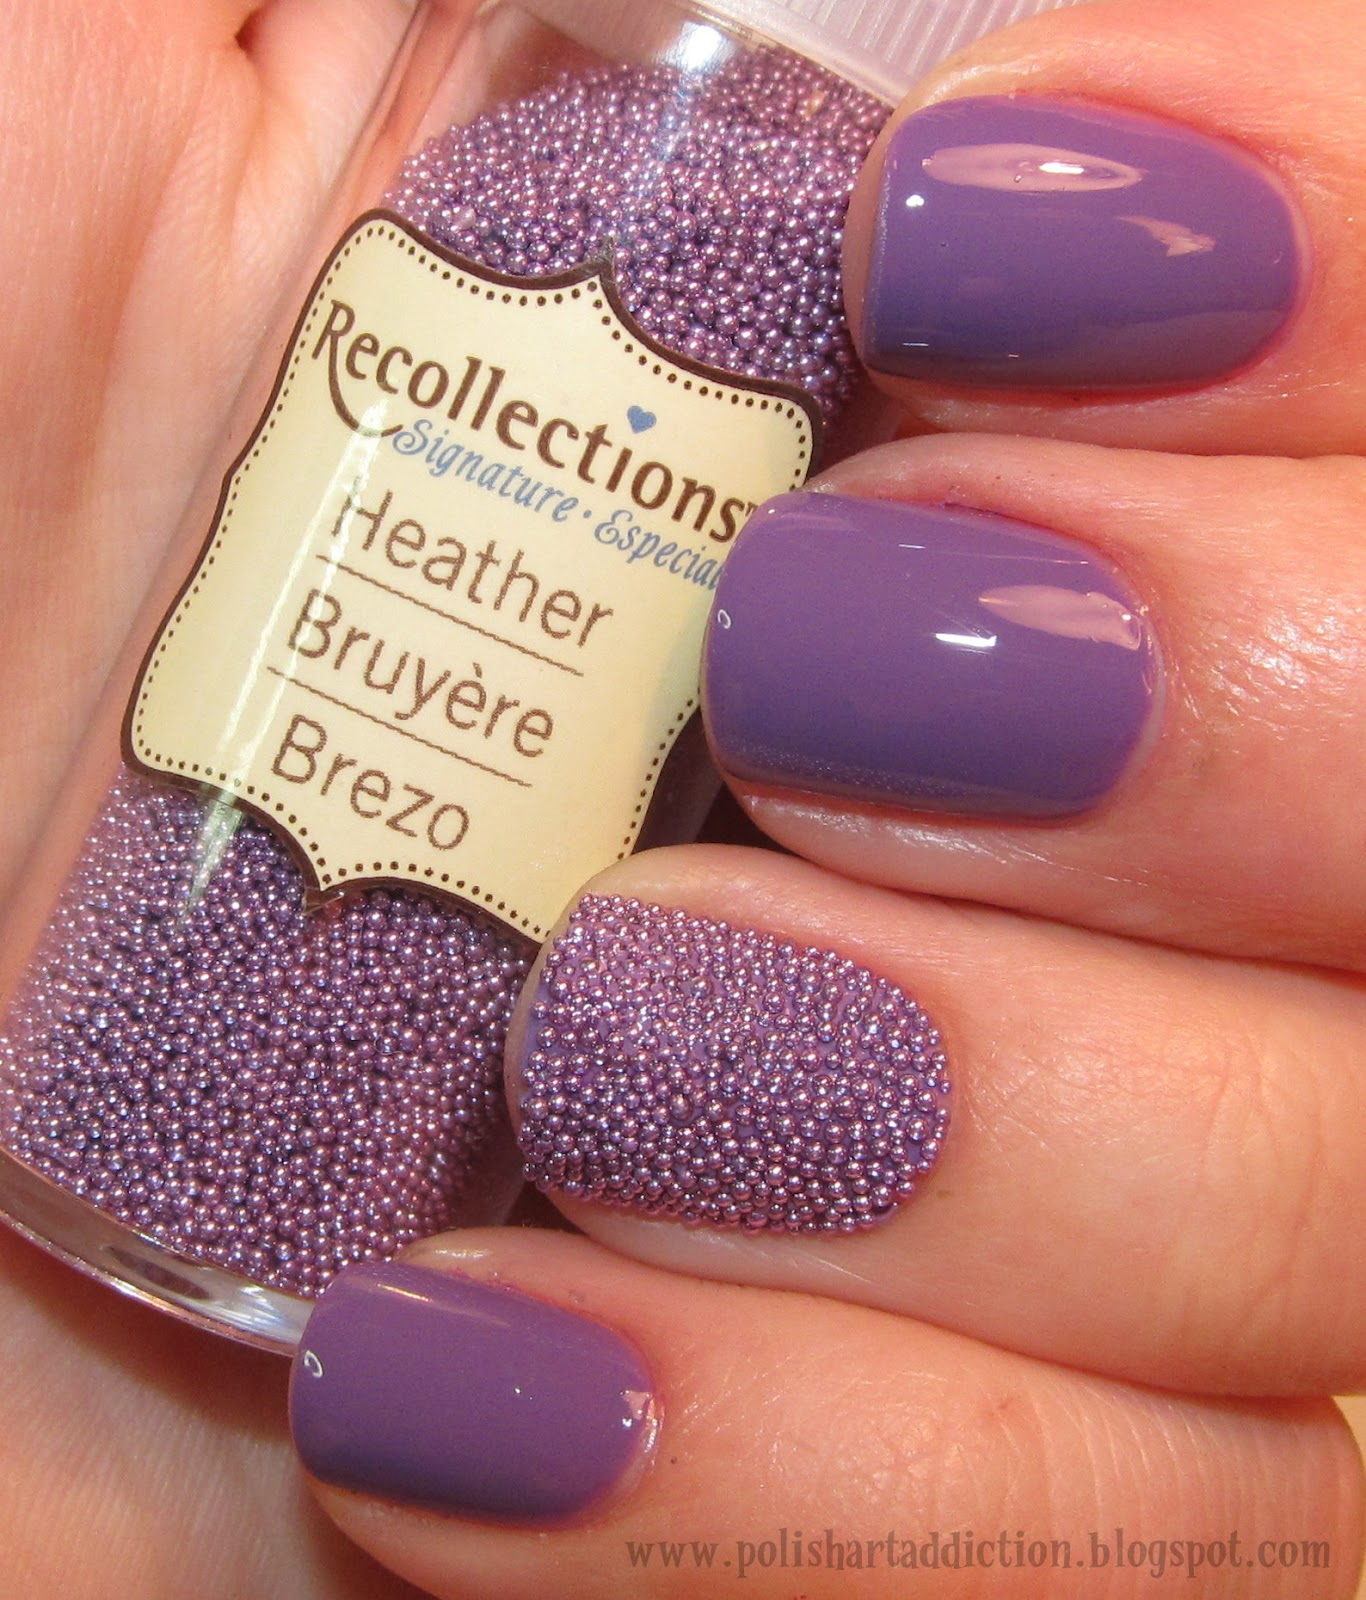 Novelty Nails - Microbeads/Fish Eggs